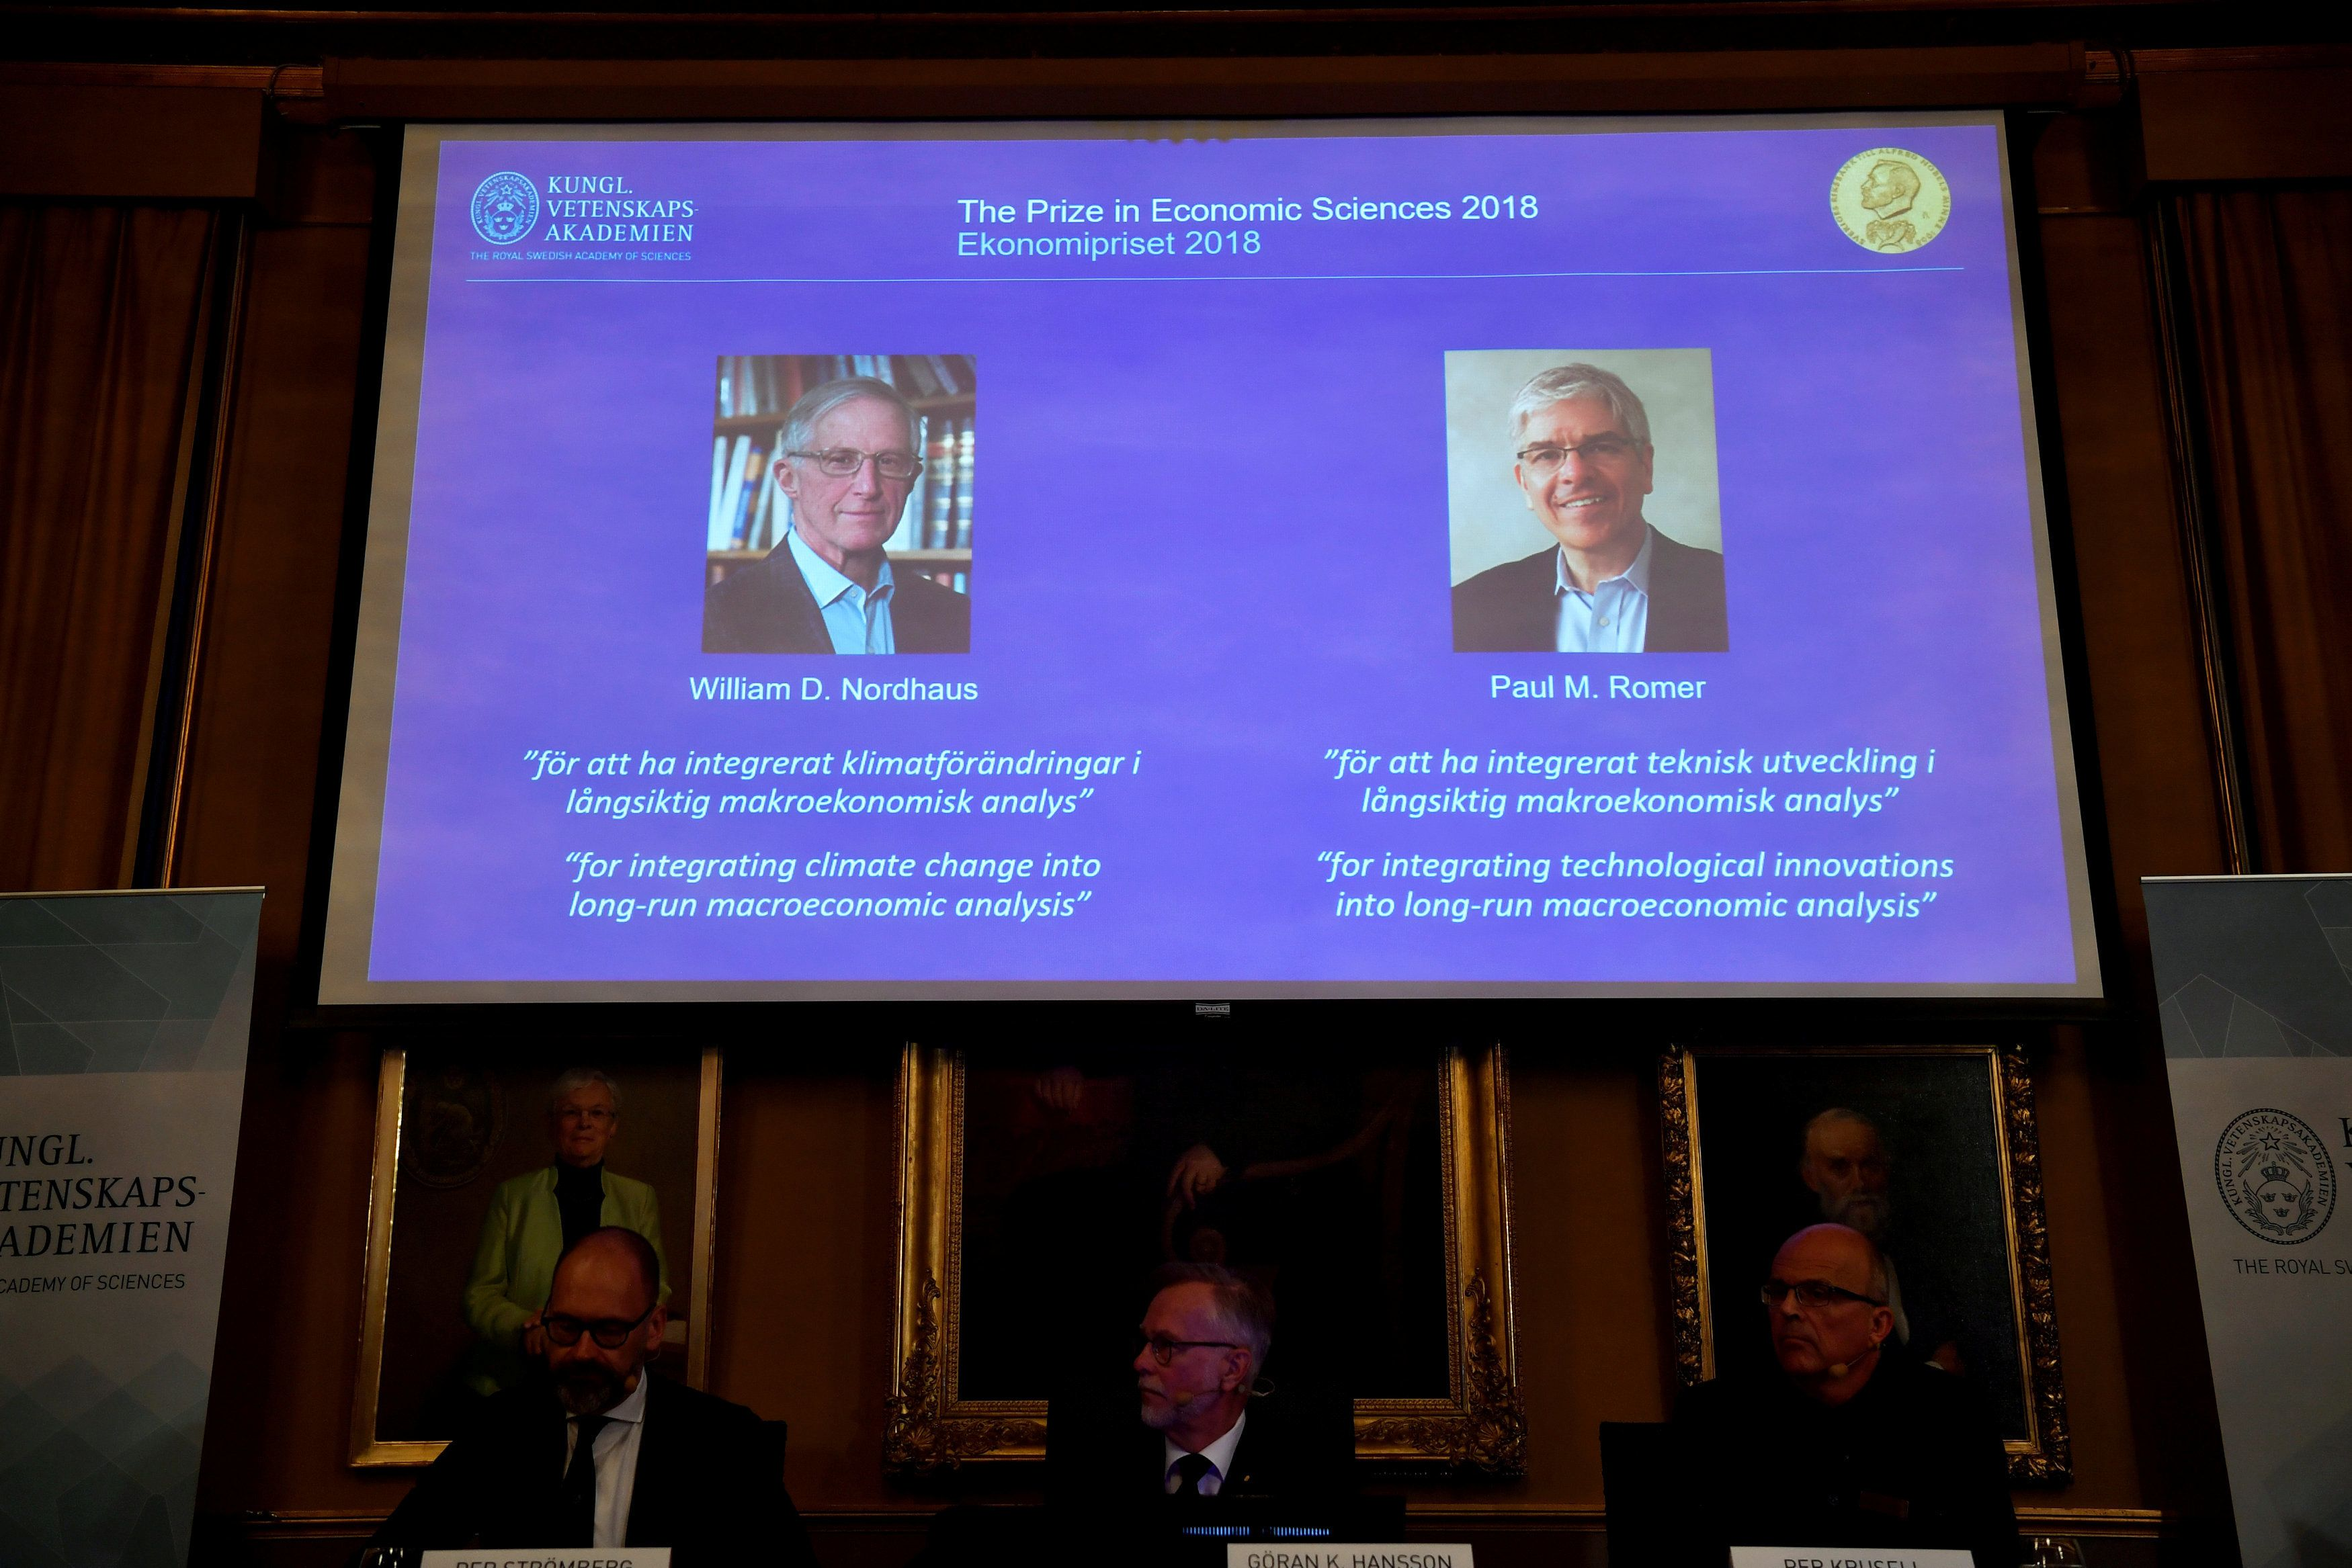 Per Stromberg, Goran K. Hansson and Per Krusell announce the laureates of the Nobel Prize in Economics during a press conference at the The Royal Swedish Academy of Sciences in Stockholm, Sweden, October 8, 2018. The prize is divided between William D. Nordhaus and Paul M. Romer. Henrik Montgomery/ TT News Agency/via REUTERS      ATTENTION EDITORS - THIS IMAGE WAS PROVIDED BY A THIRD PARTY. SWEDEN OUT. NO COMMERCIAL OR EDITORIAL SALES IN SWEDEN.